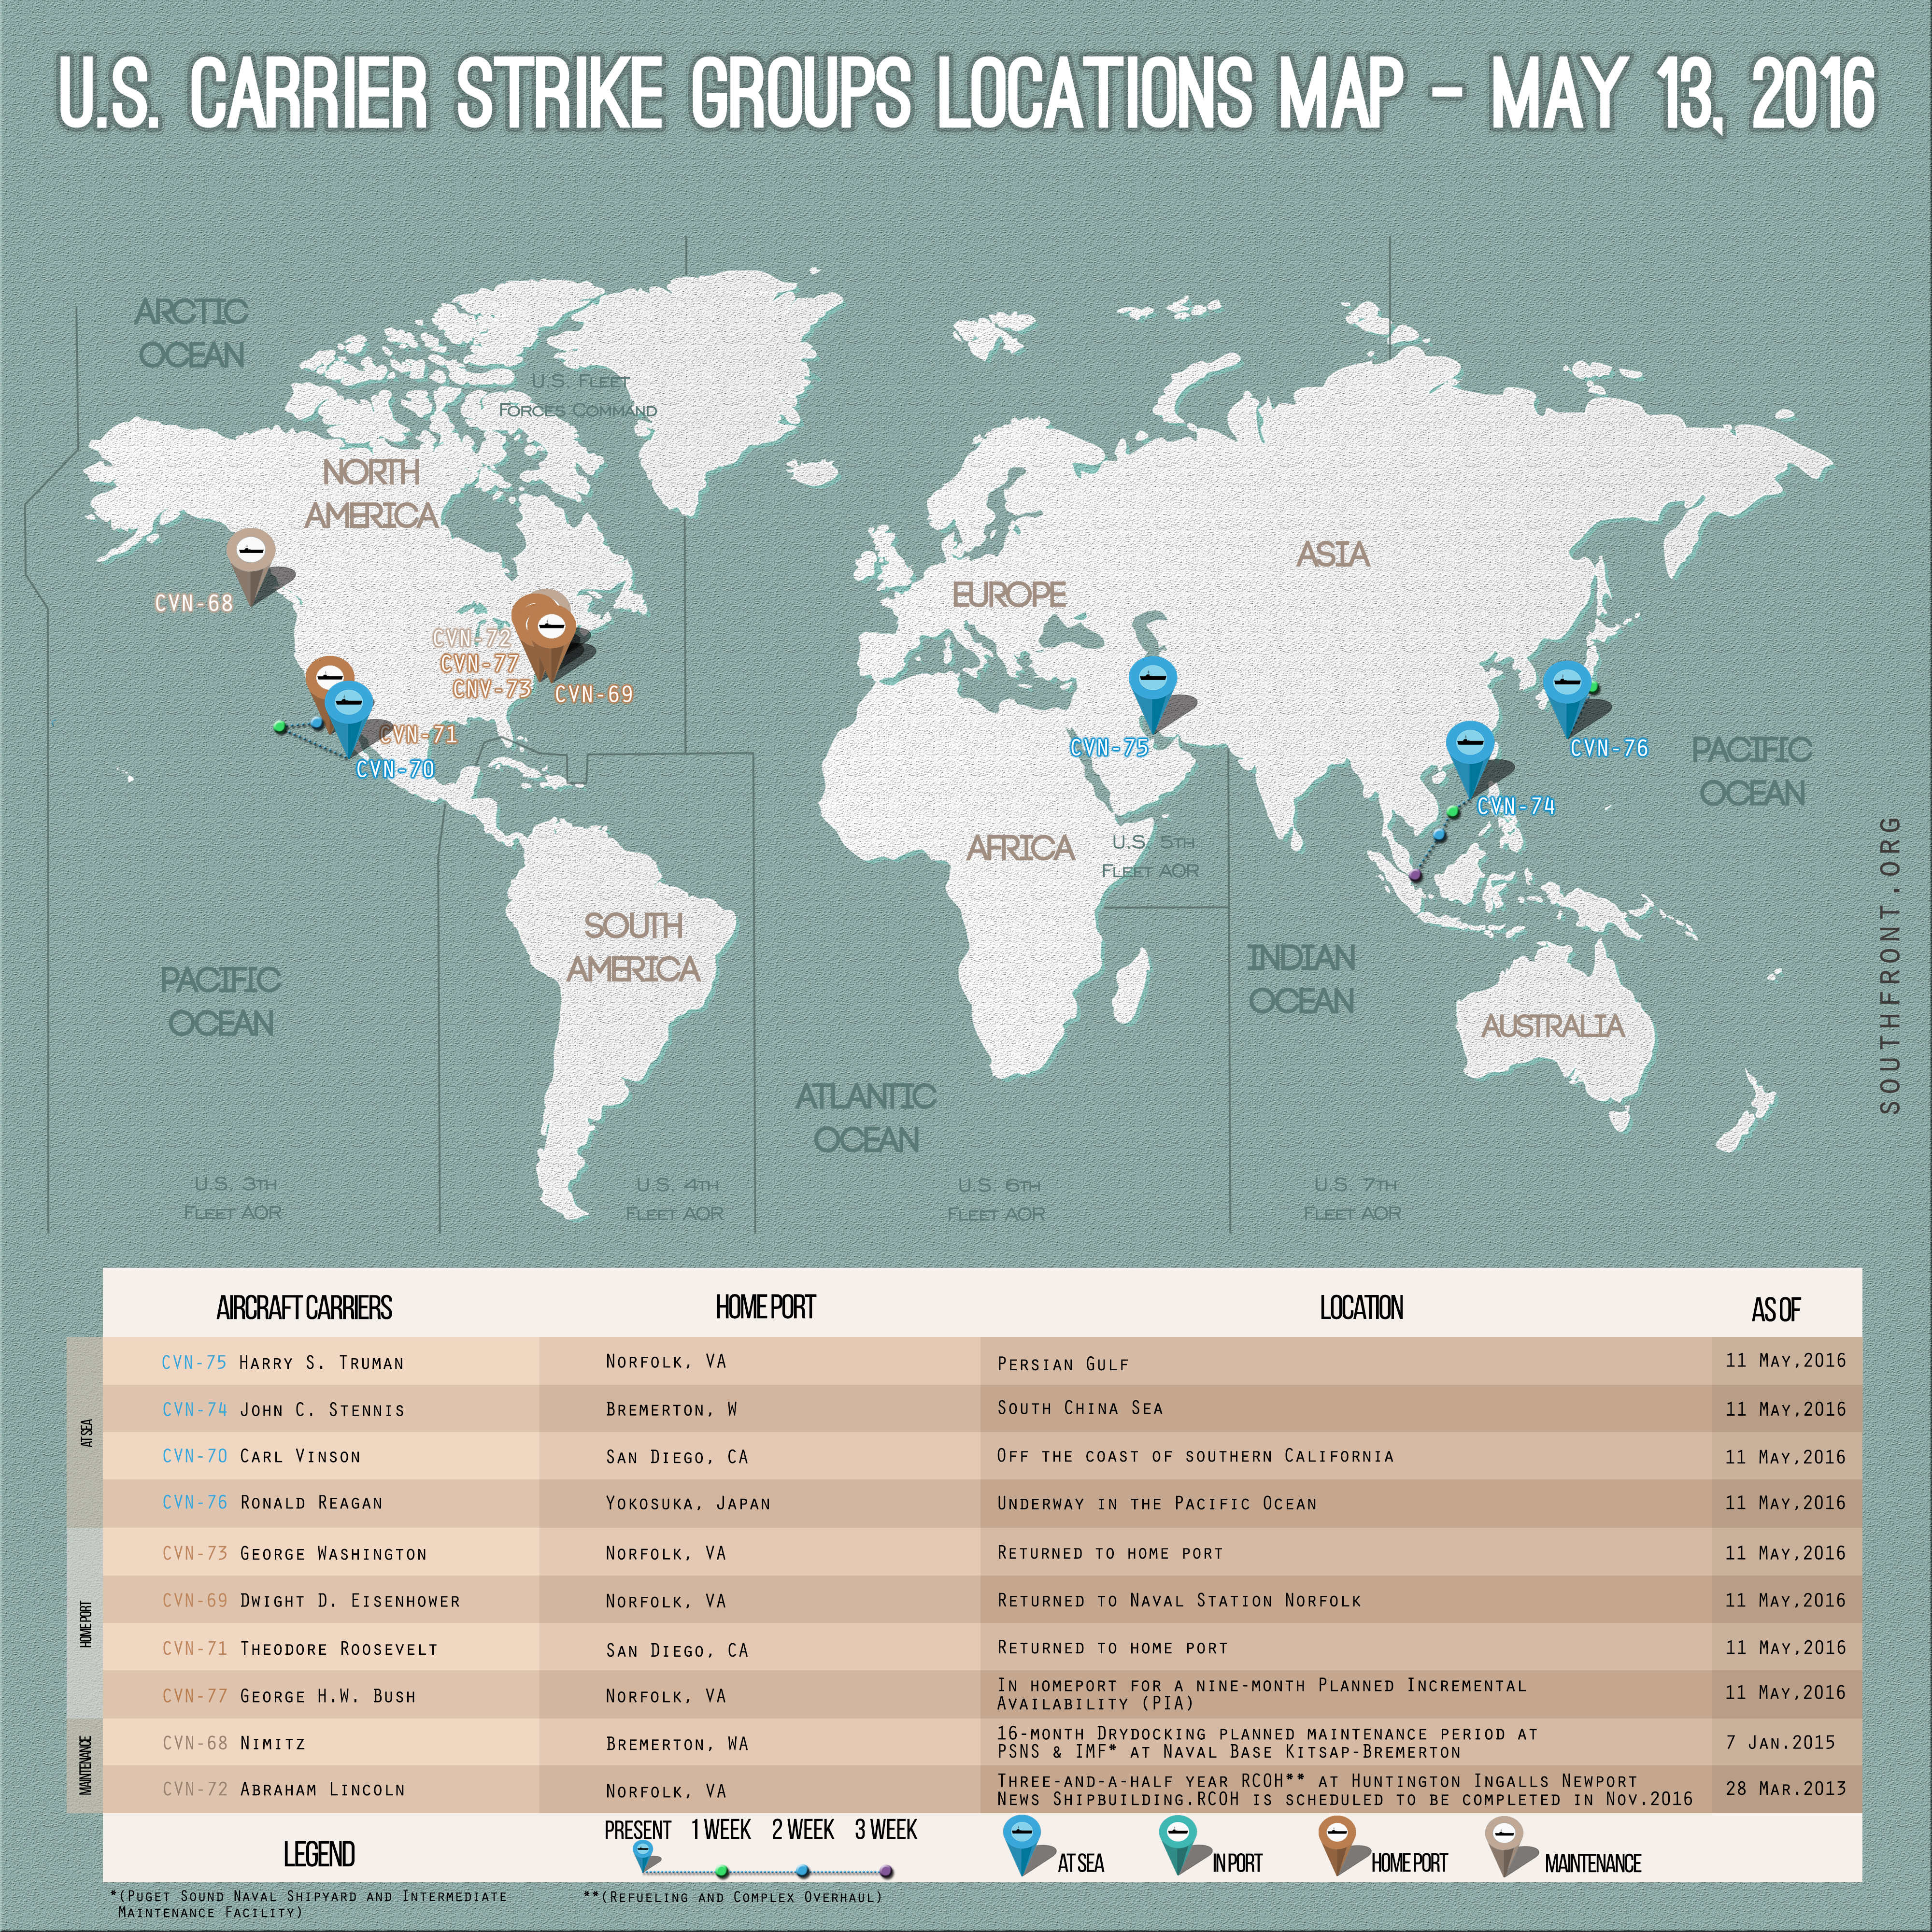 U.S. Carrier Strike Groups Locations Map – May 13, 2016